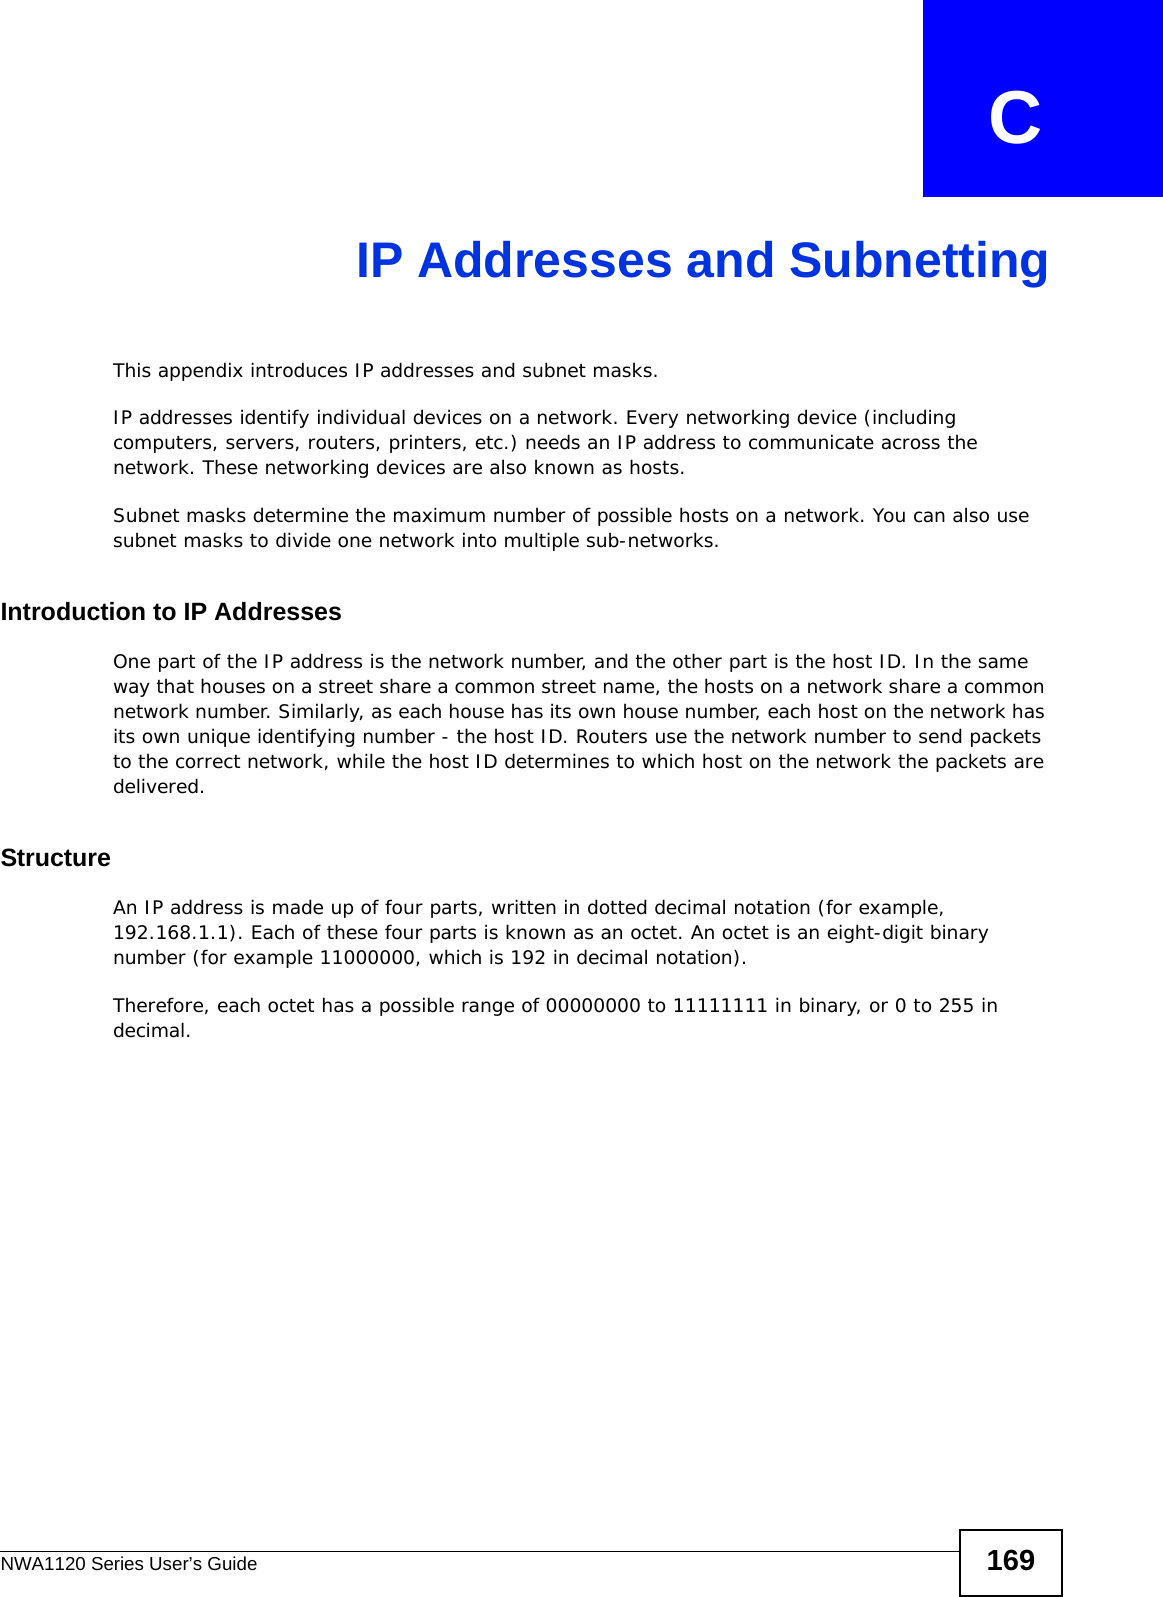 How To Calculate Subnet Mask From Ip Address With Example